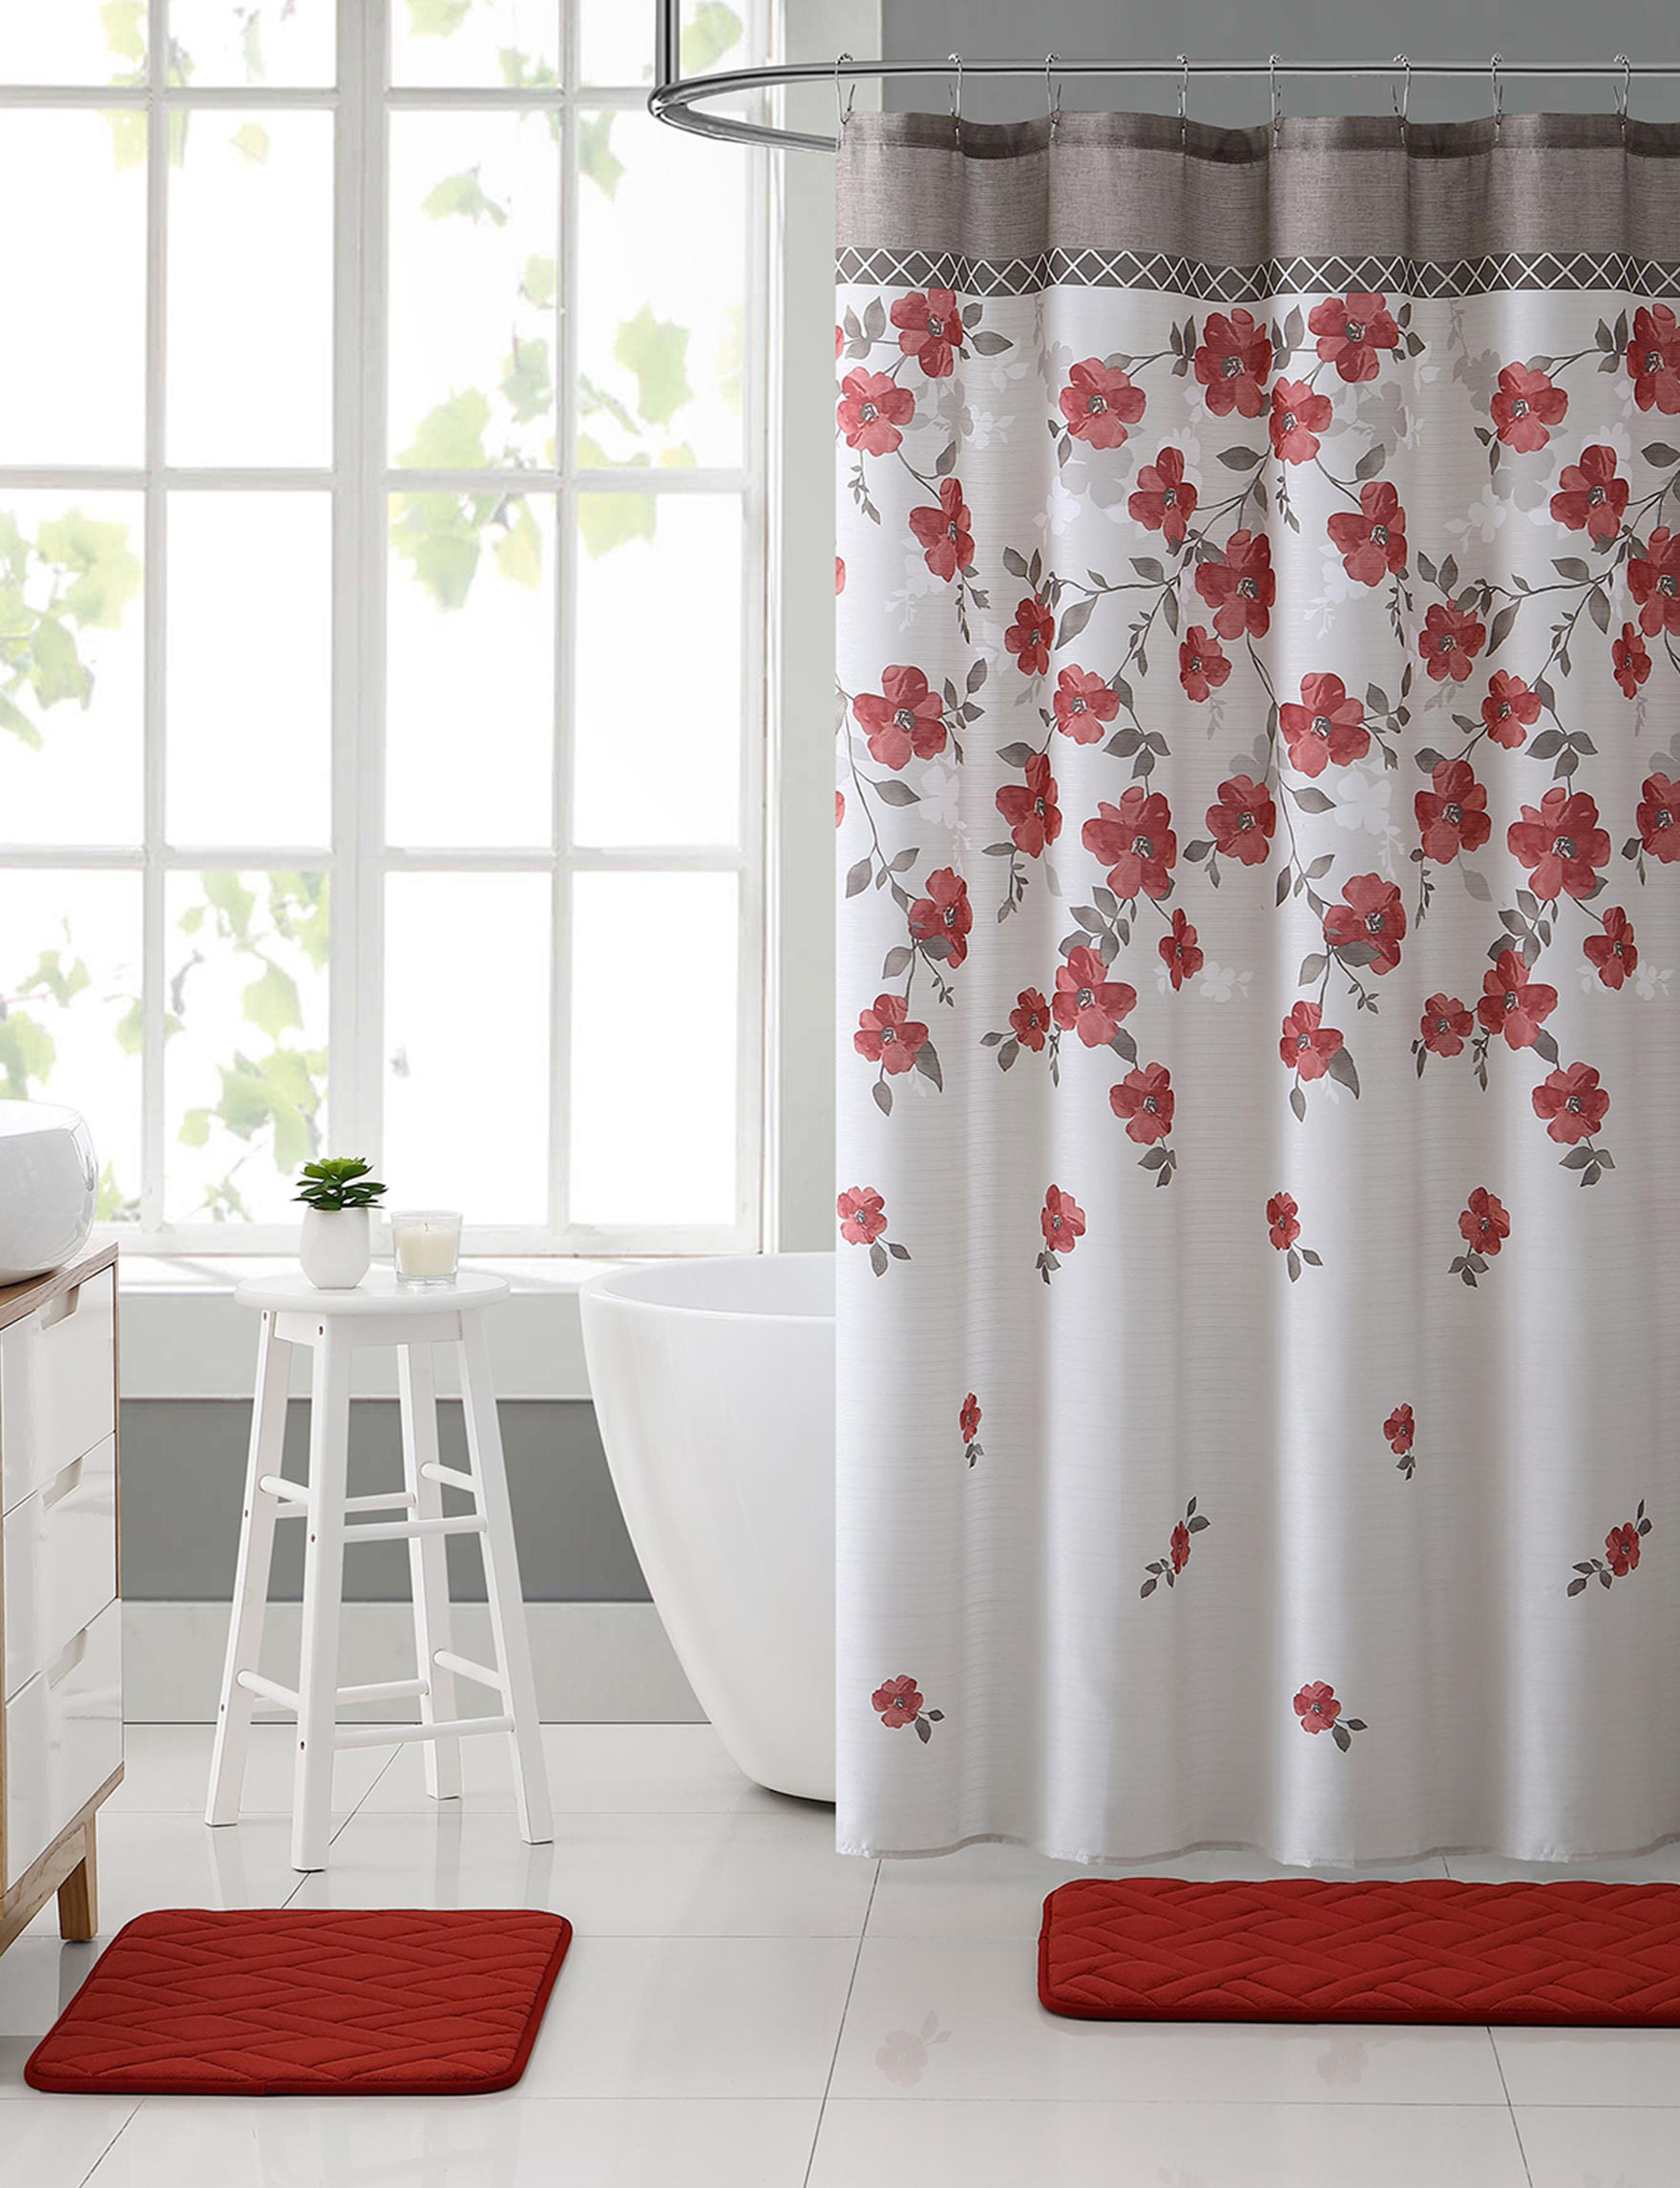 VCNY Home Red Multi Bath Accessories Bath Rugs & Mats Shower Curtains & Hooks